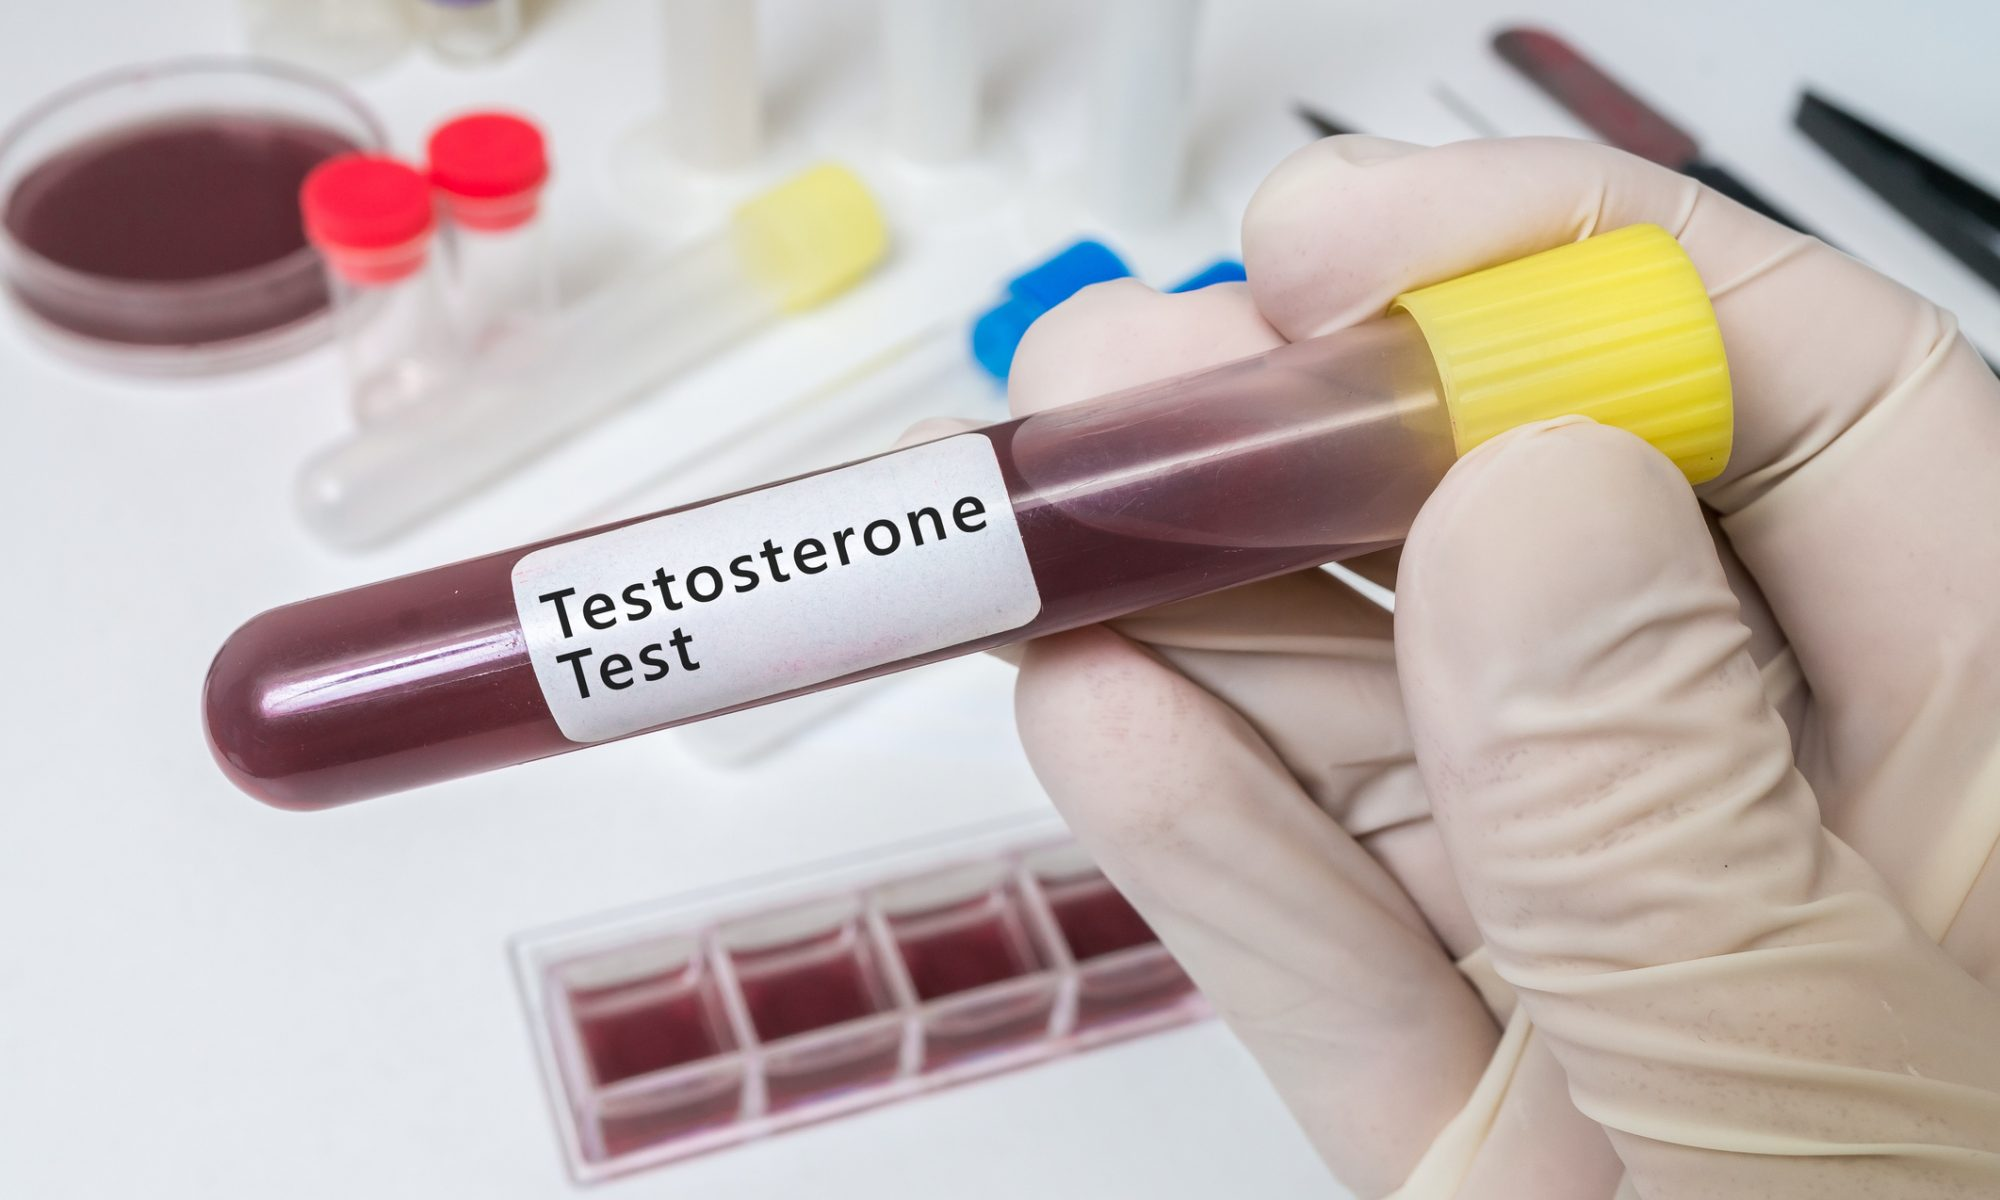 Hand holds test tube for testosterone test.